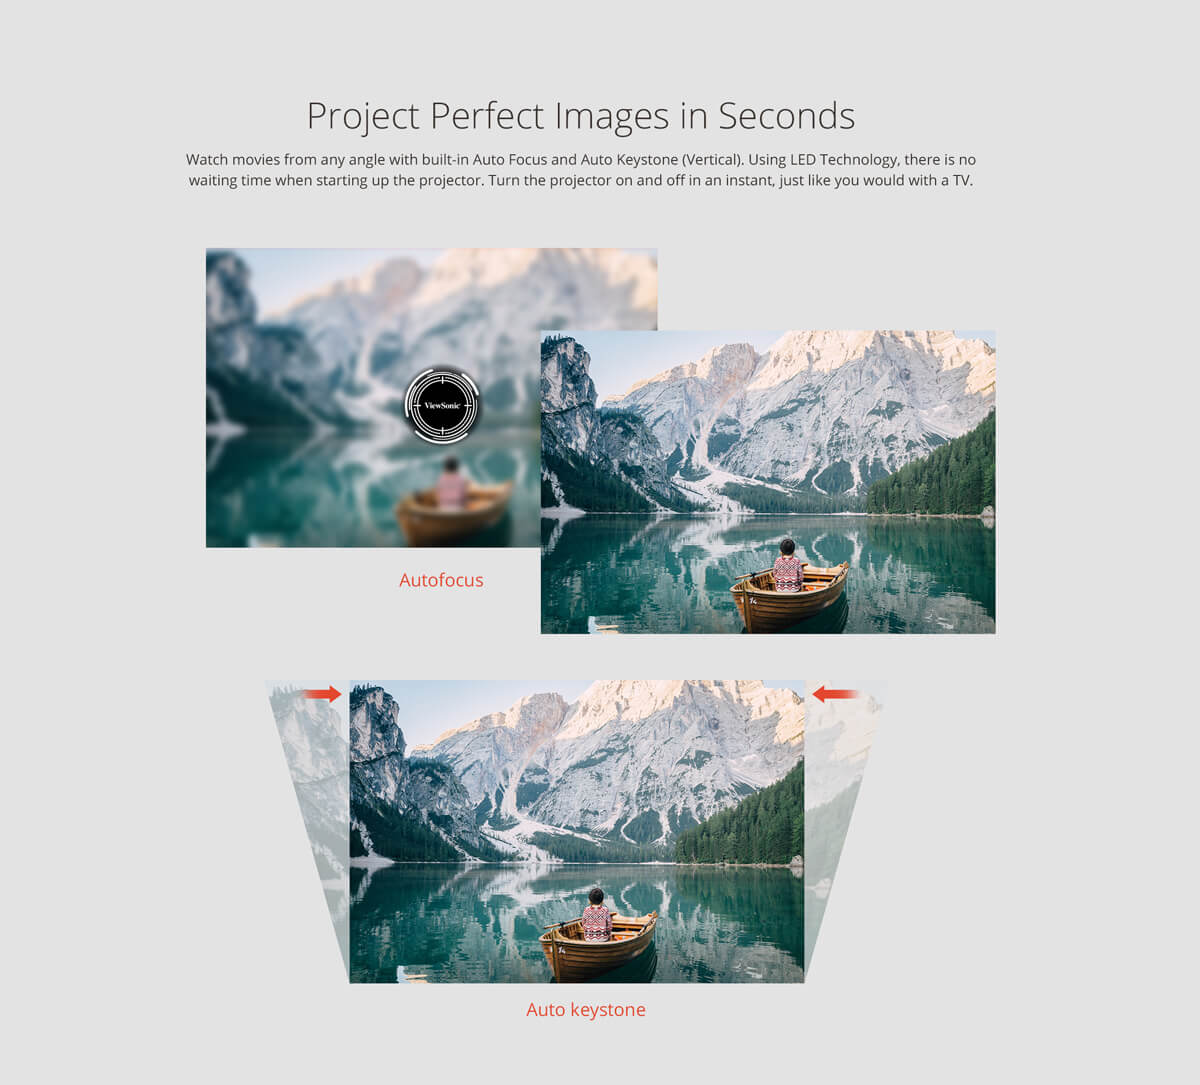 Smart Projectors include Auto Focus & Auto Keystone as additional features